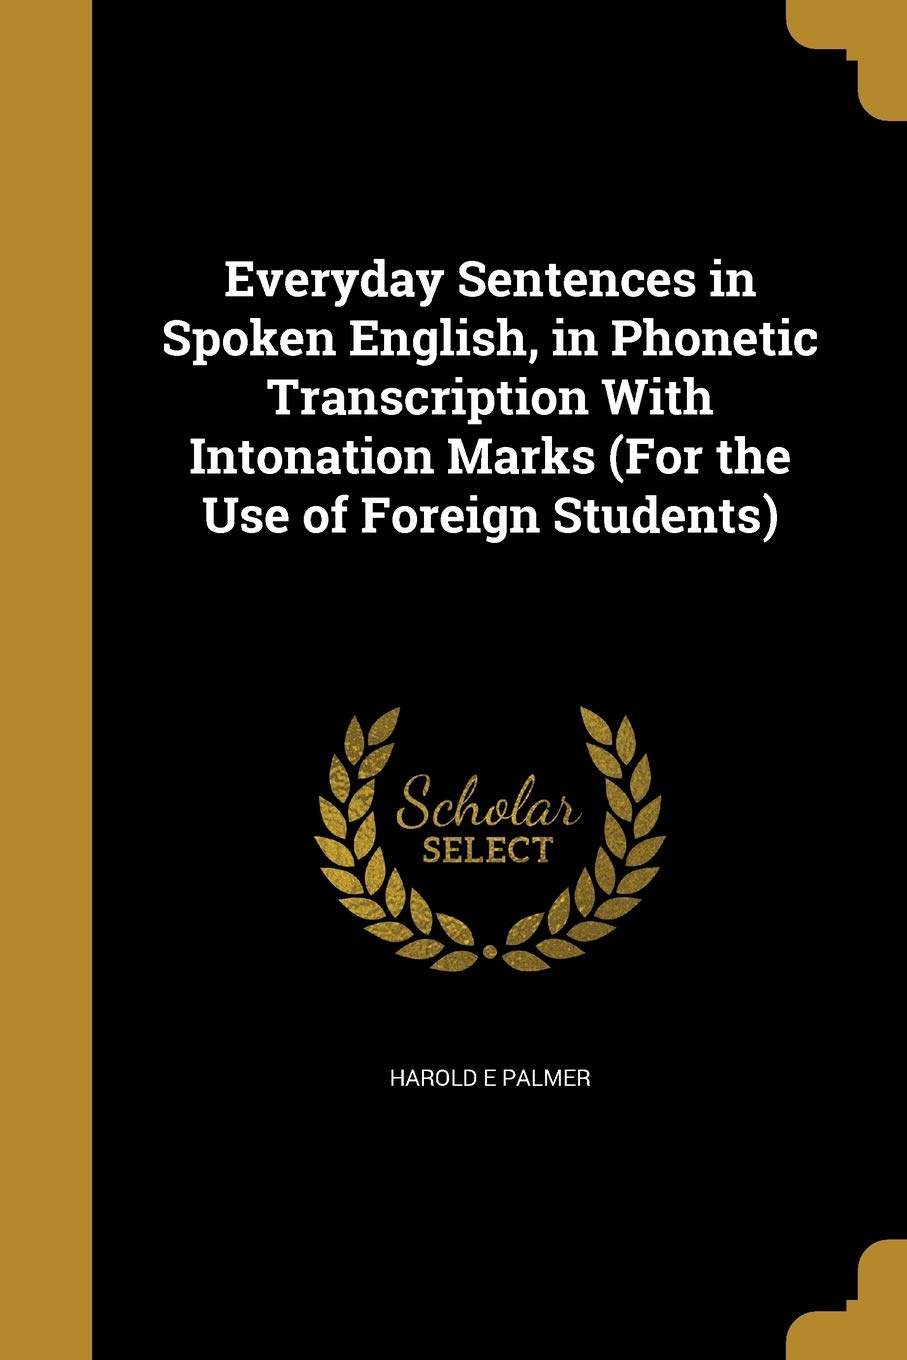 Everyday Sentences in Spoken English, in Phonetic Transcription with